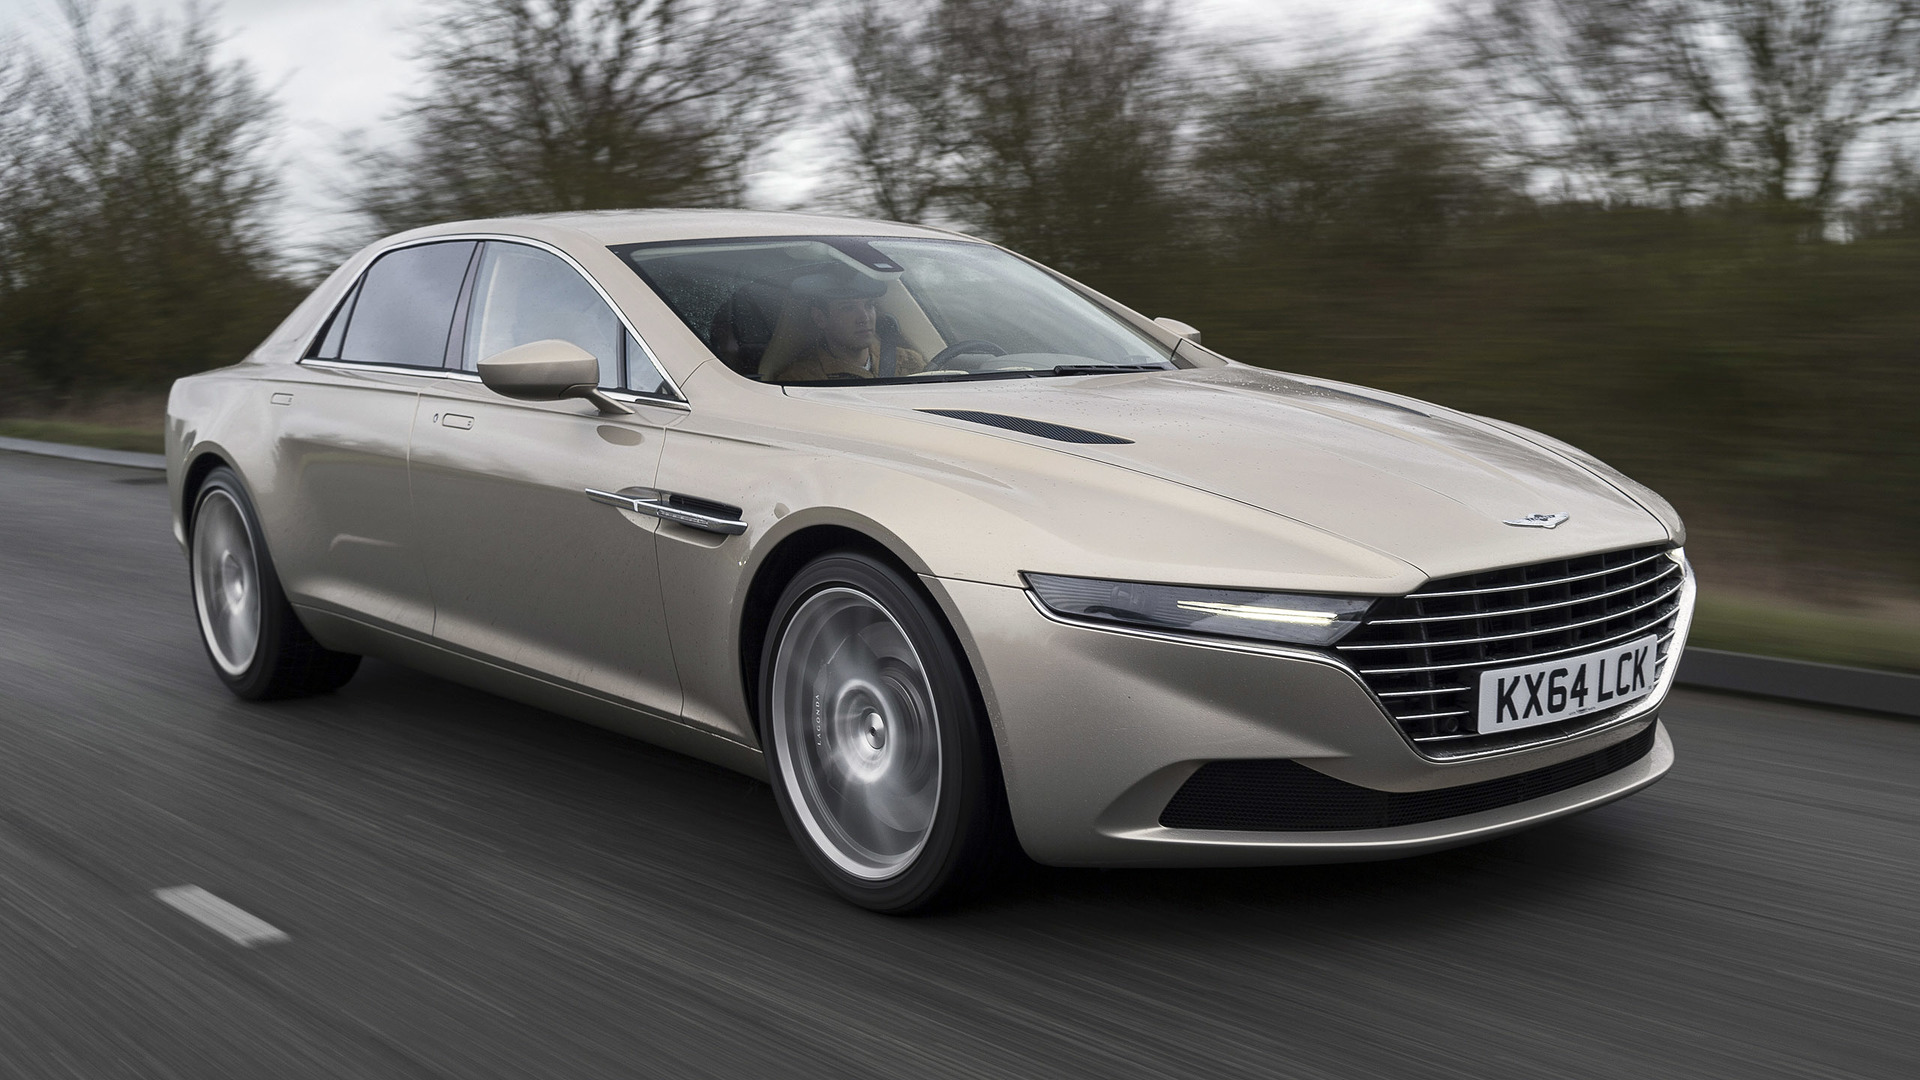 2016 aston martin lagonda taraf first drive: the merely rich need